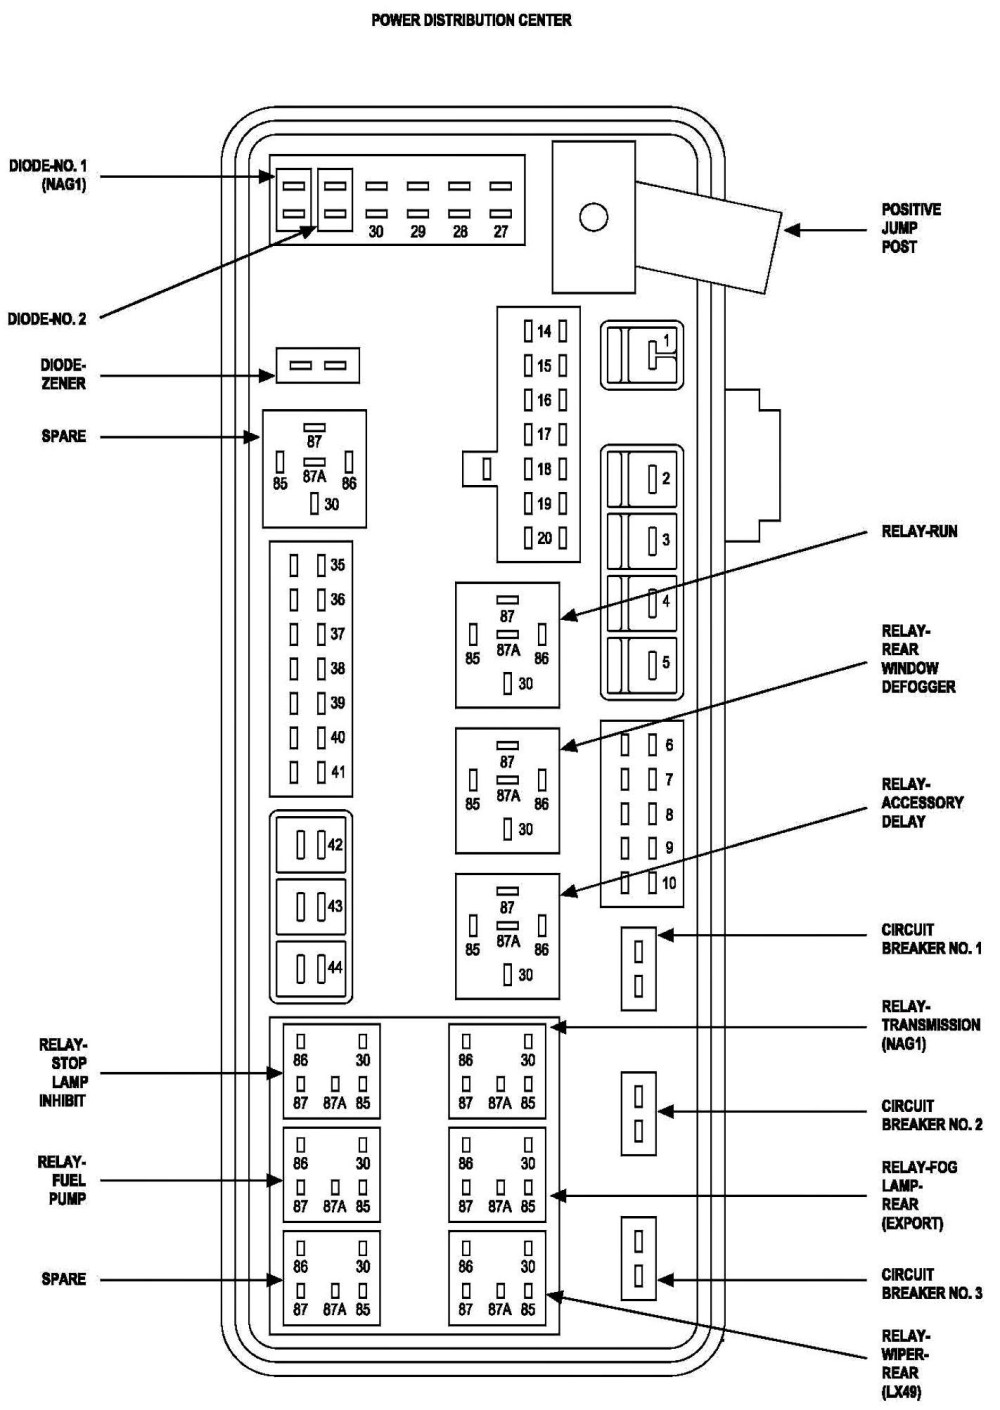 medium resolution of 1998 voyager fuse box diagram wiring diagram blog 1998 plymouth voyager fuse box diagram pdf